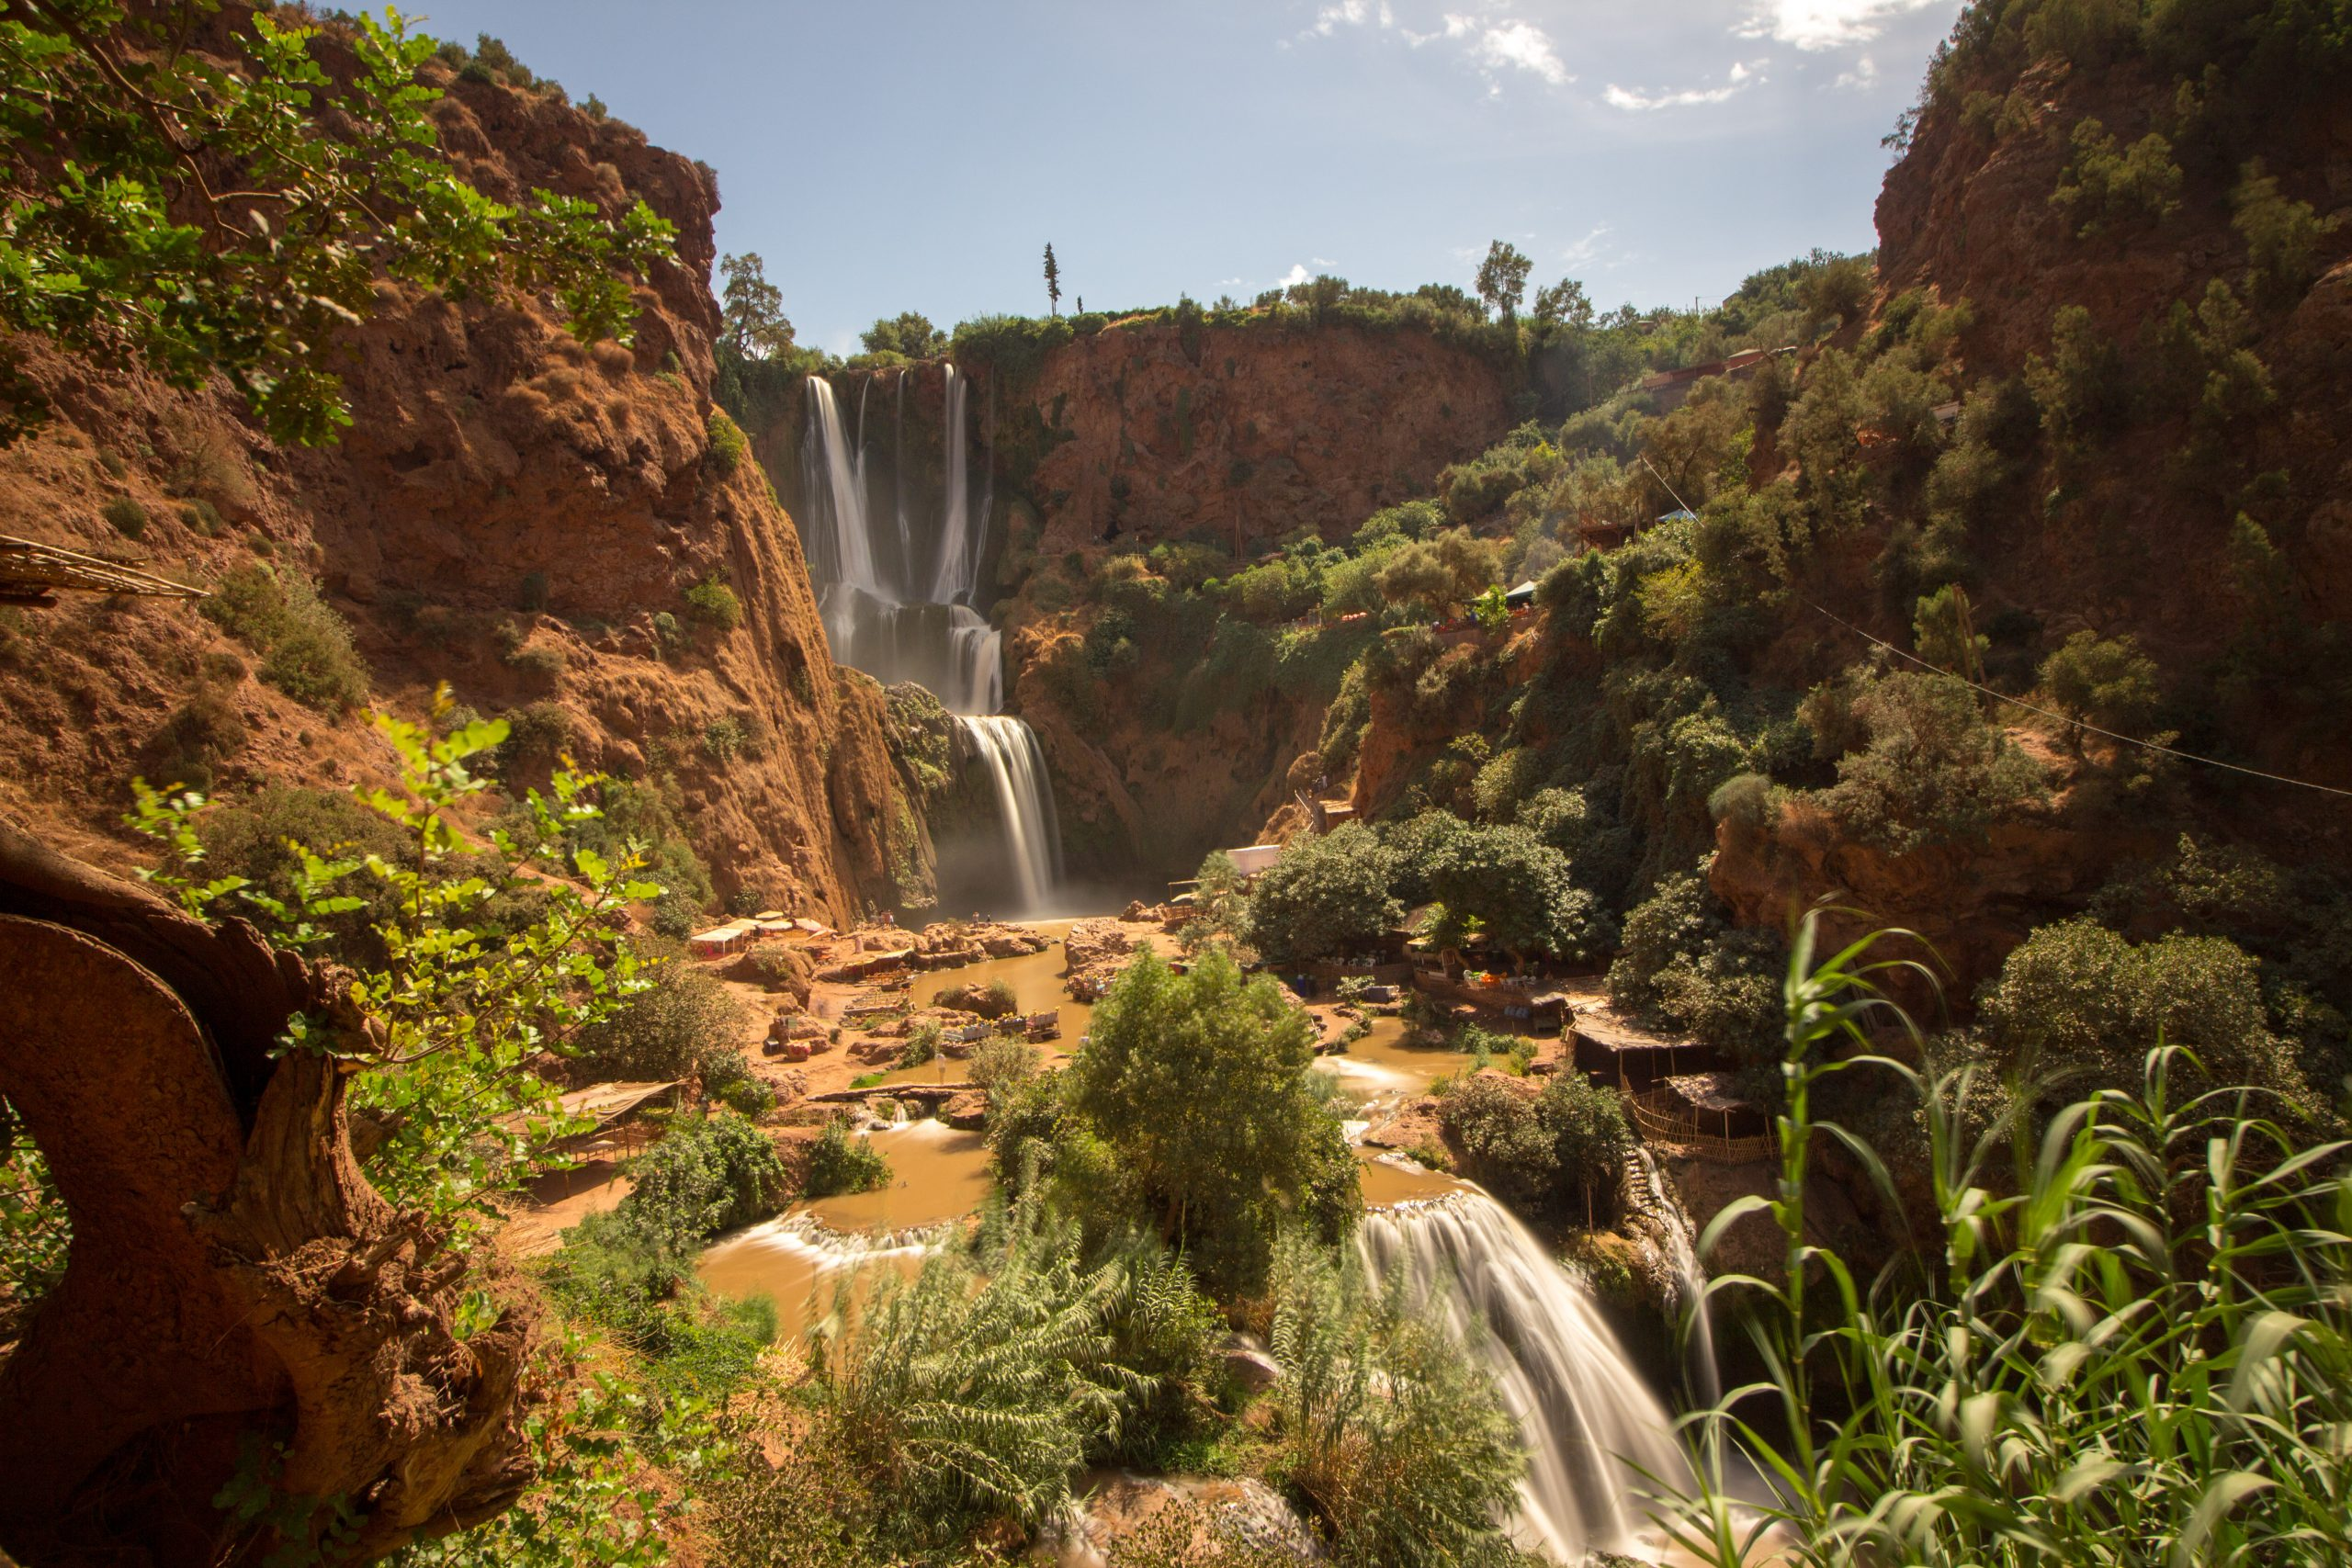 gallery image for Natural Treasures of Morocco